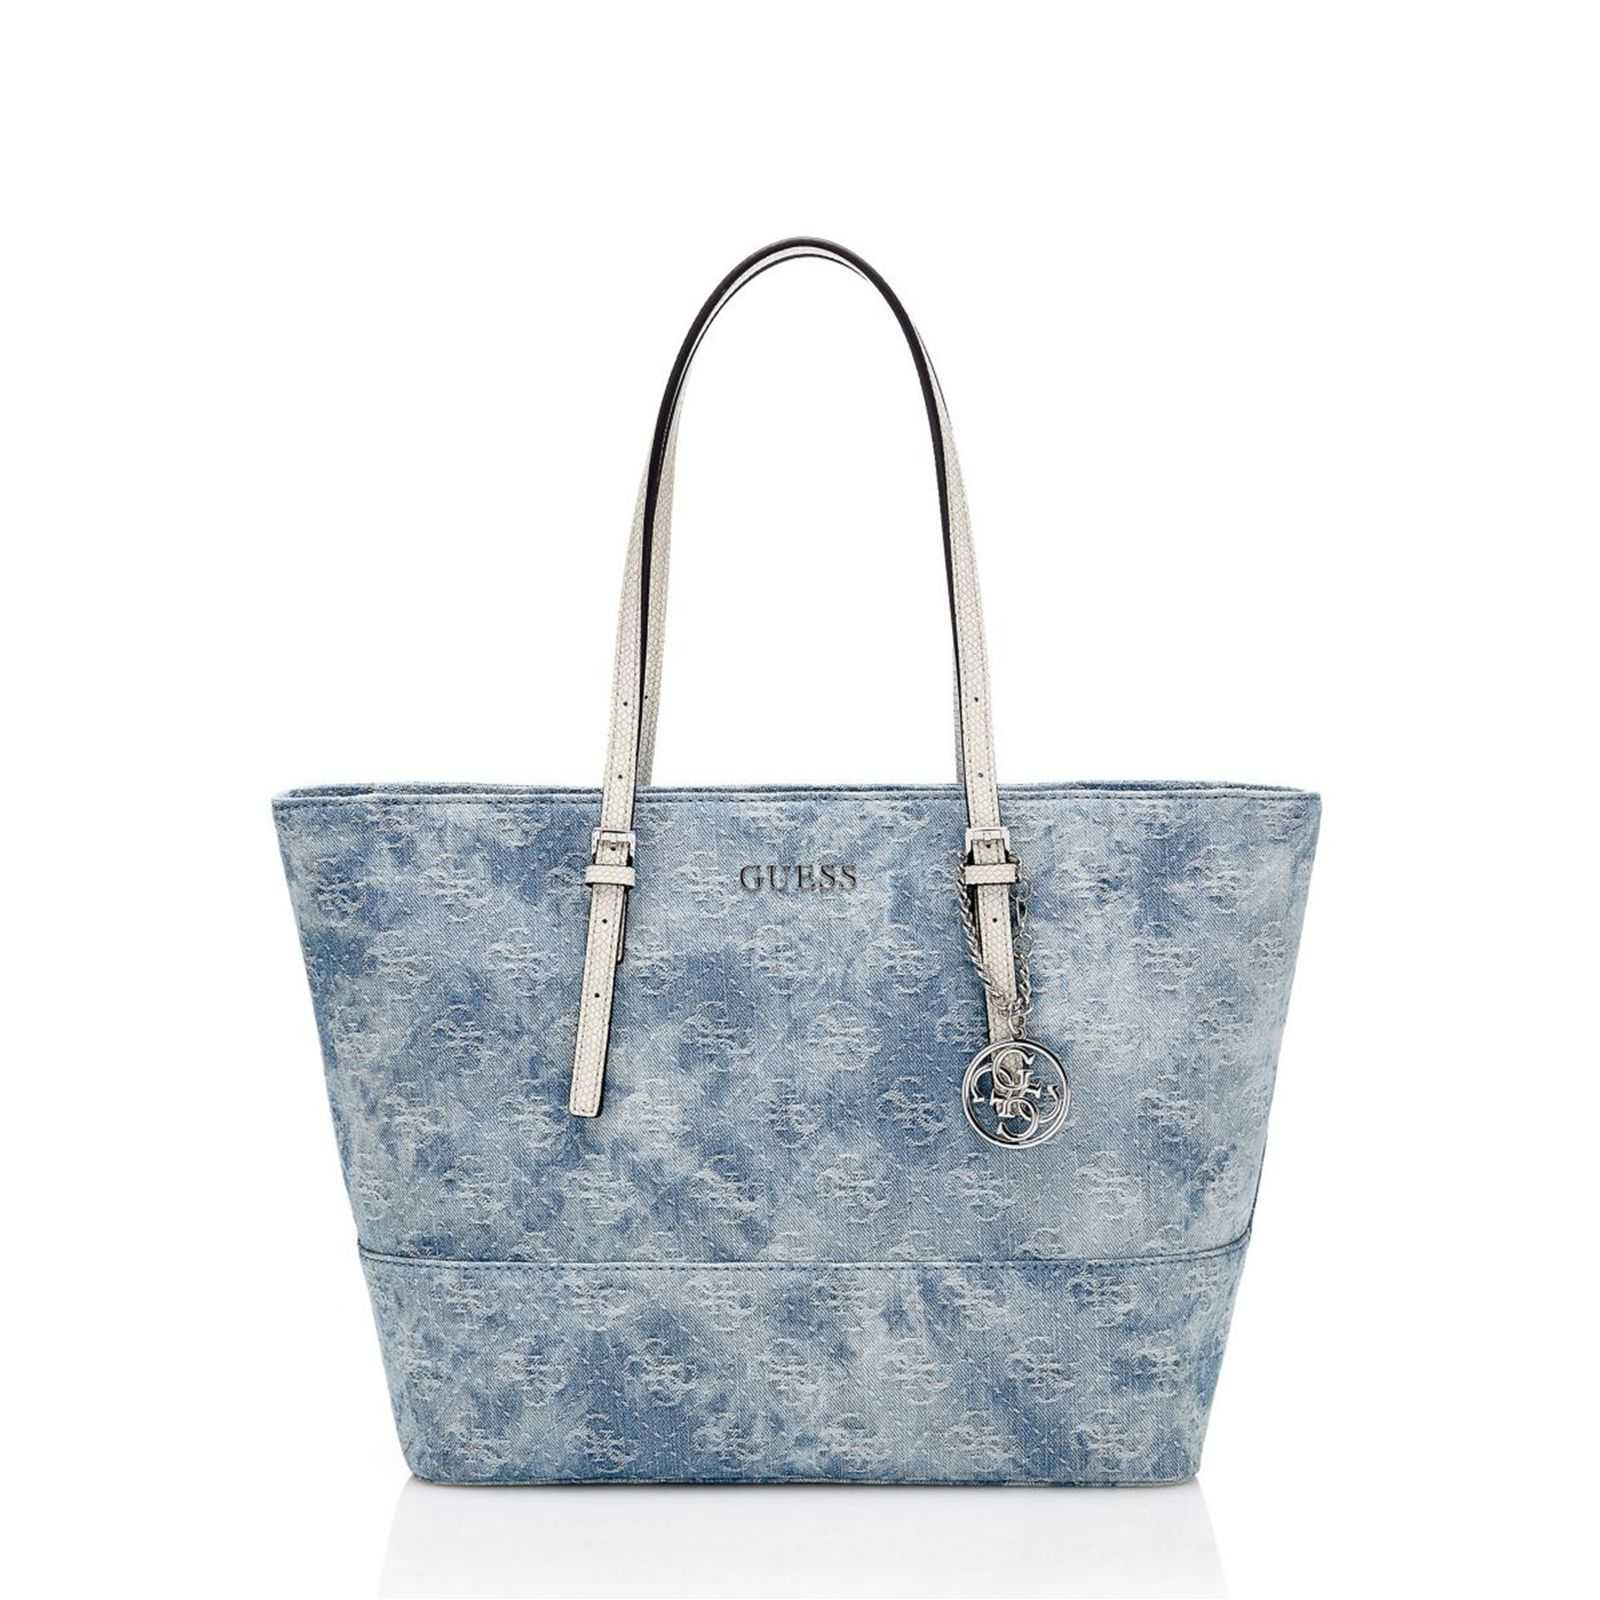 Guess Delaney - Sac à main - bleu